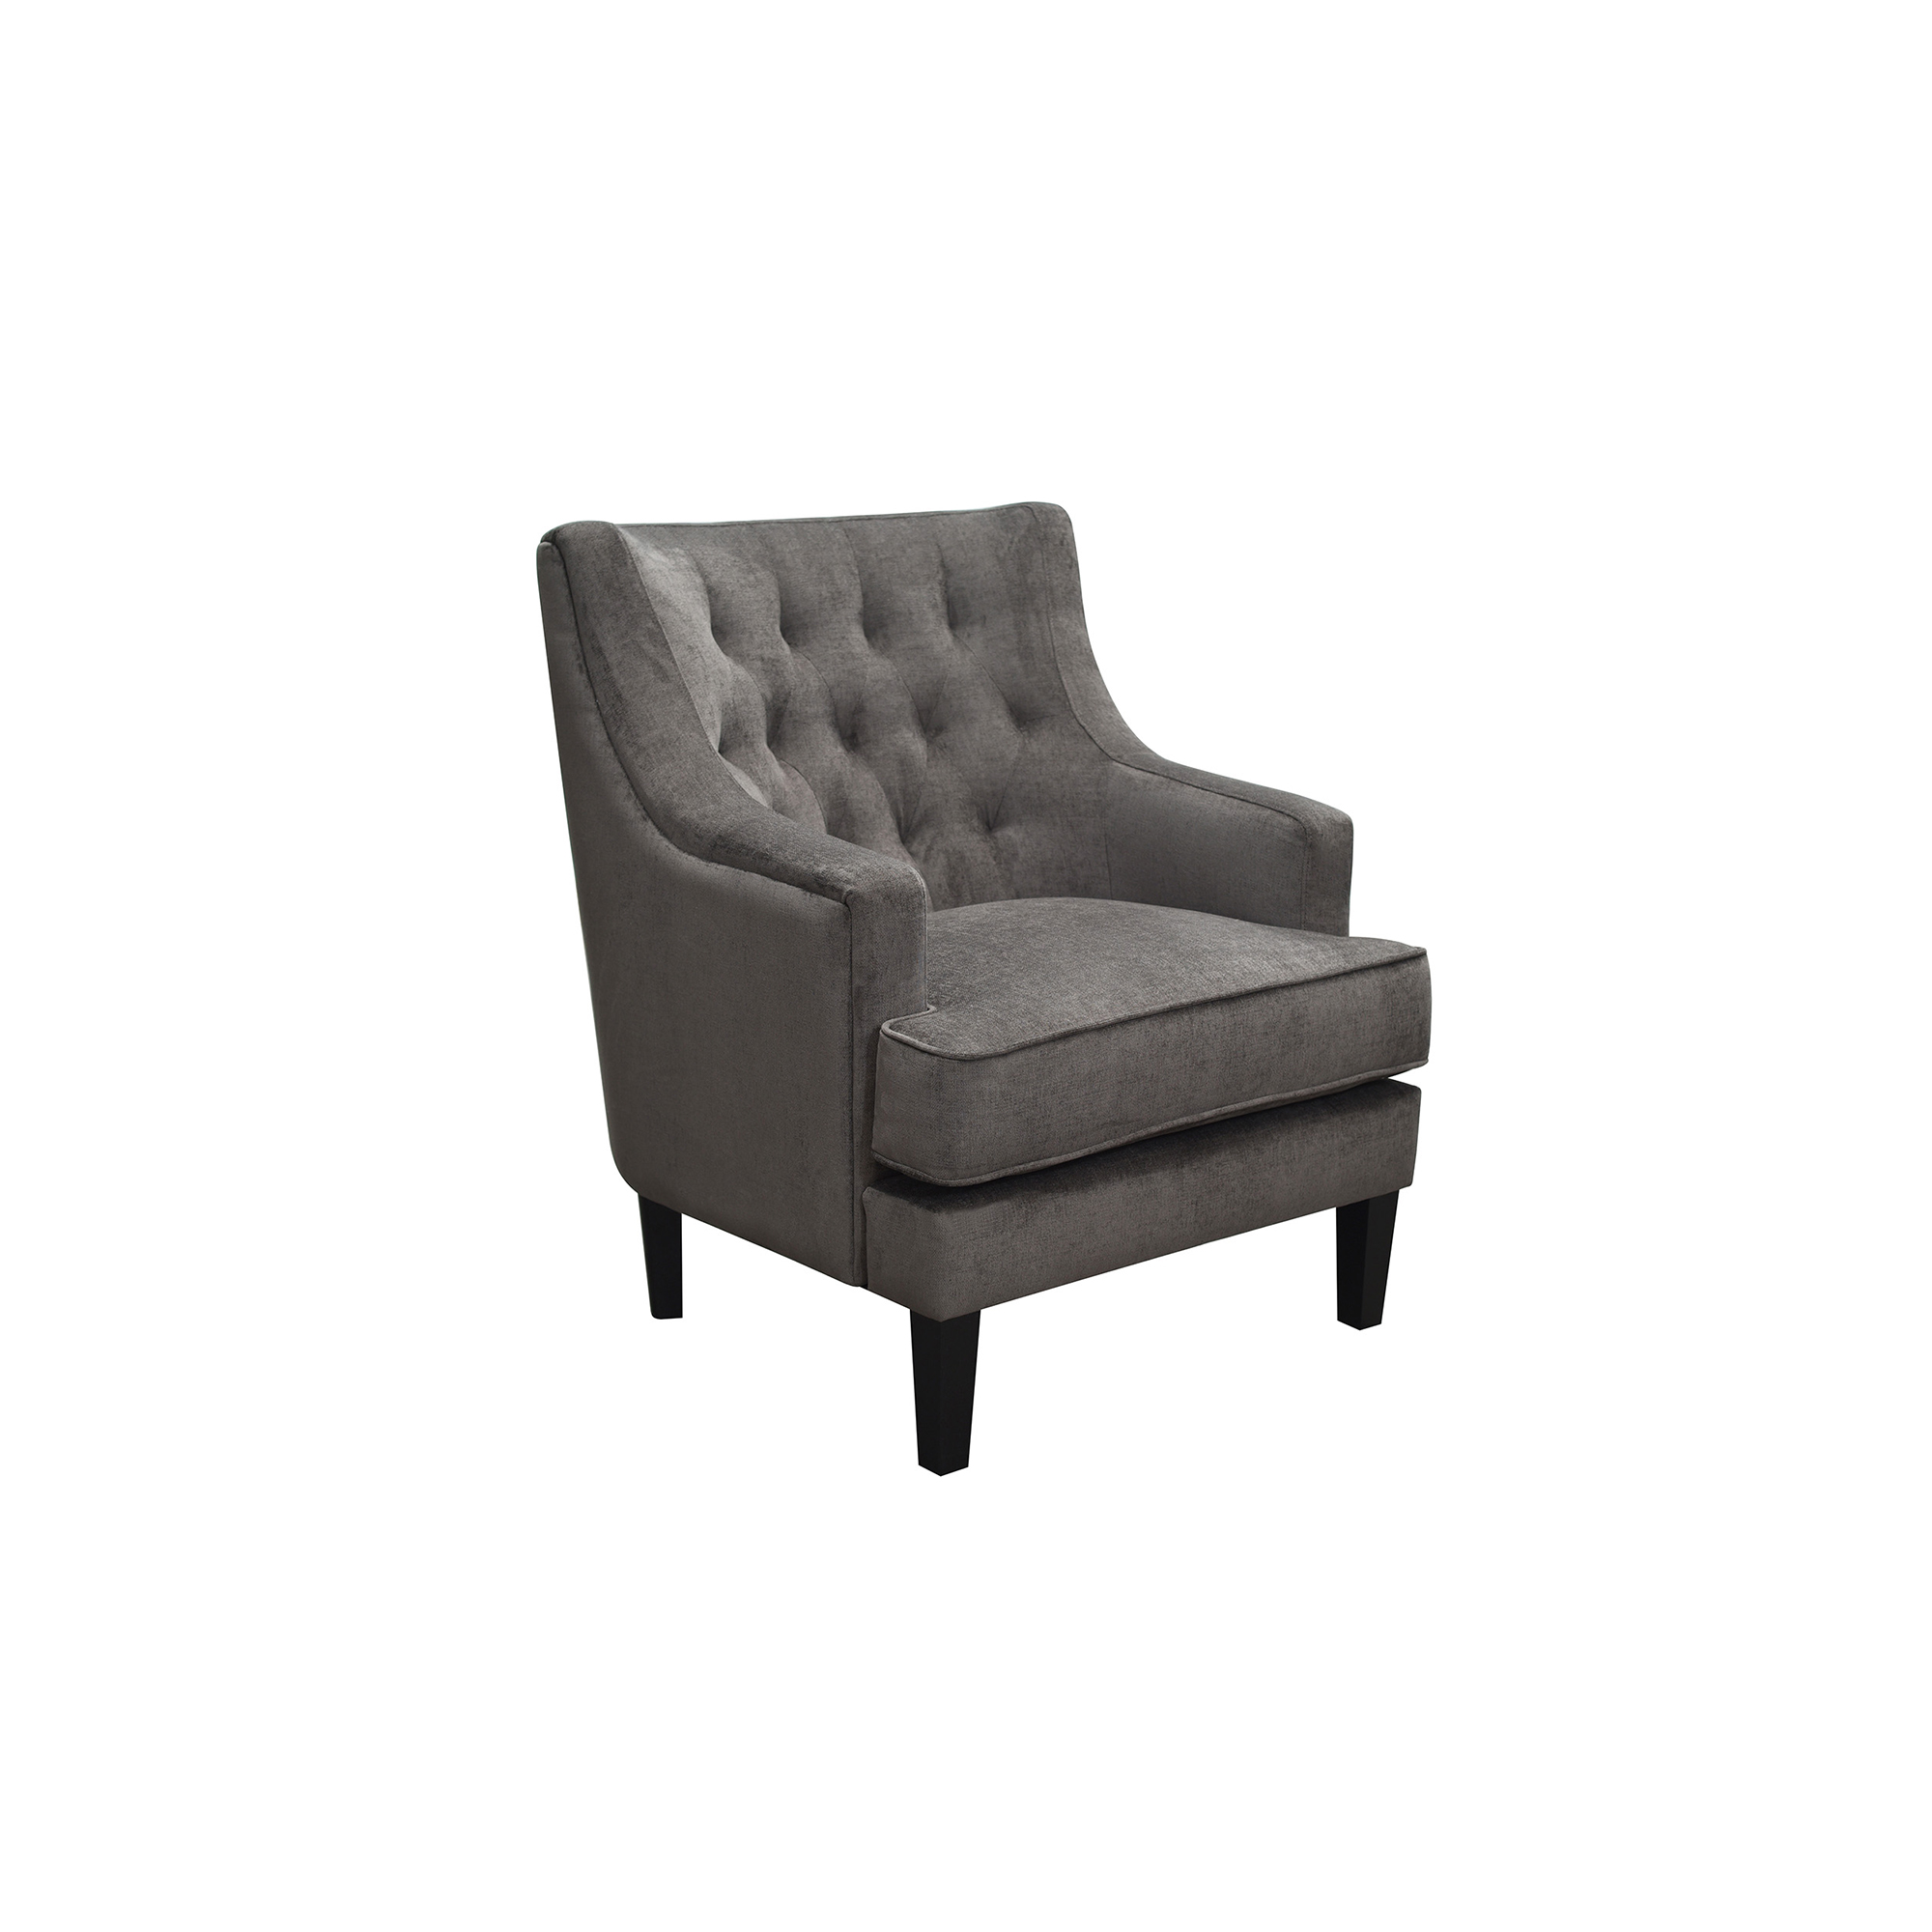 Moran Recliners Chairs Products Moran Furniture